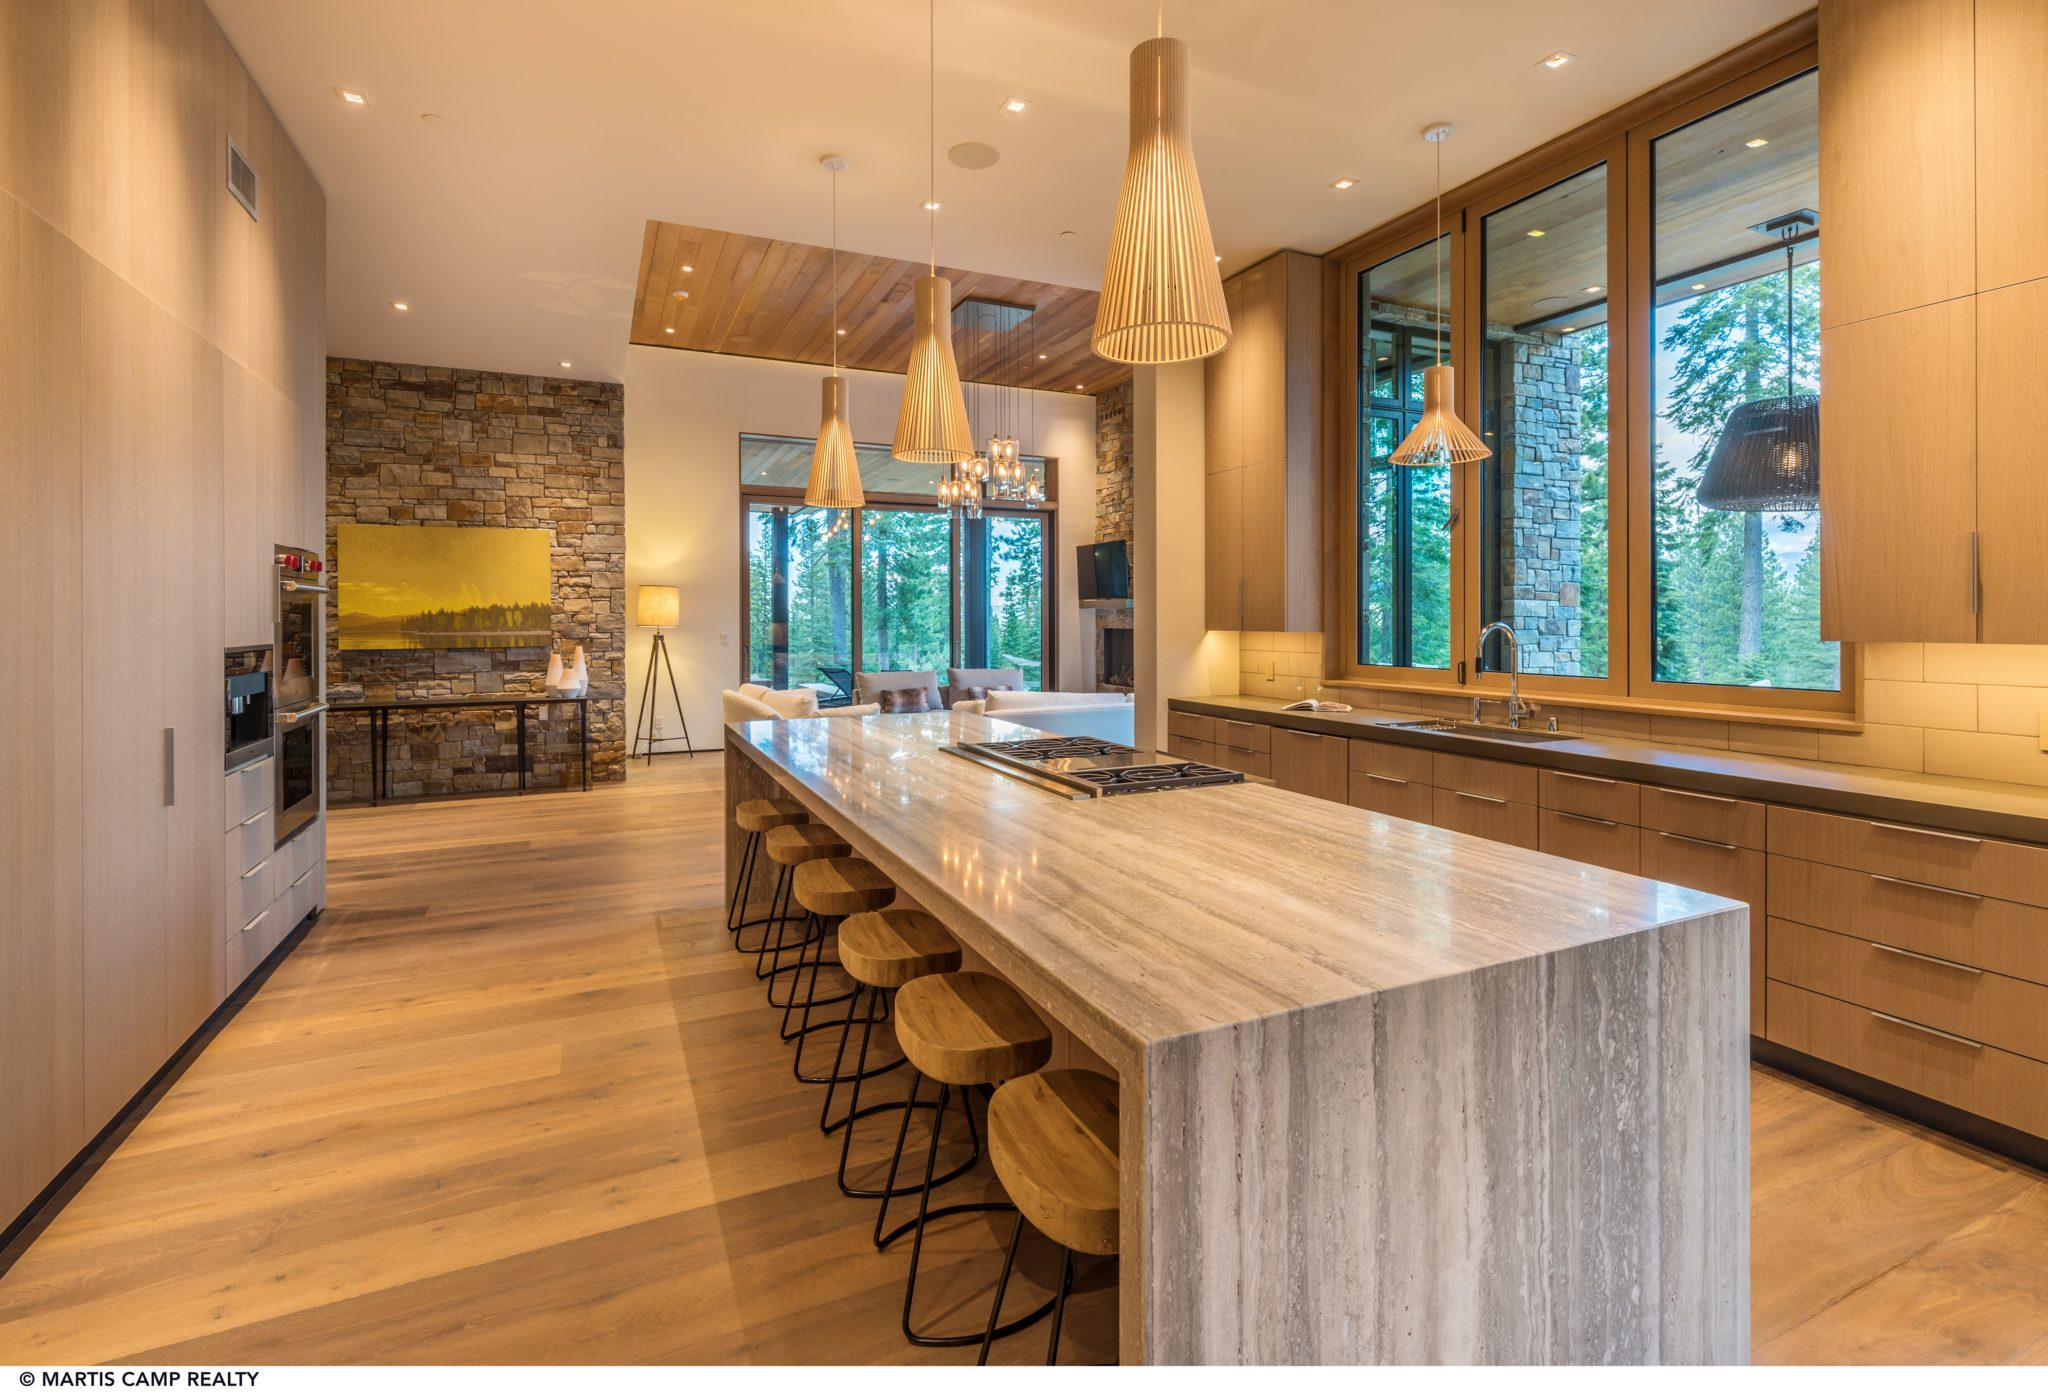 Martis Camp Modern Home, Open Kitchen, Waterfall Island, Flush Cabinetry by Dennis E. Zirbel, Architect